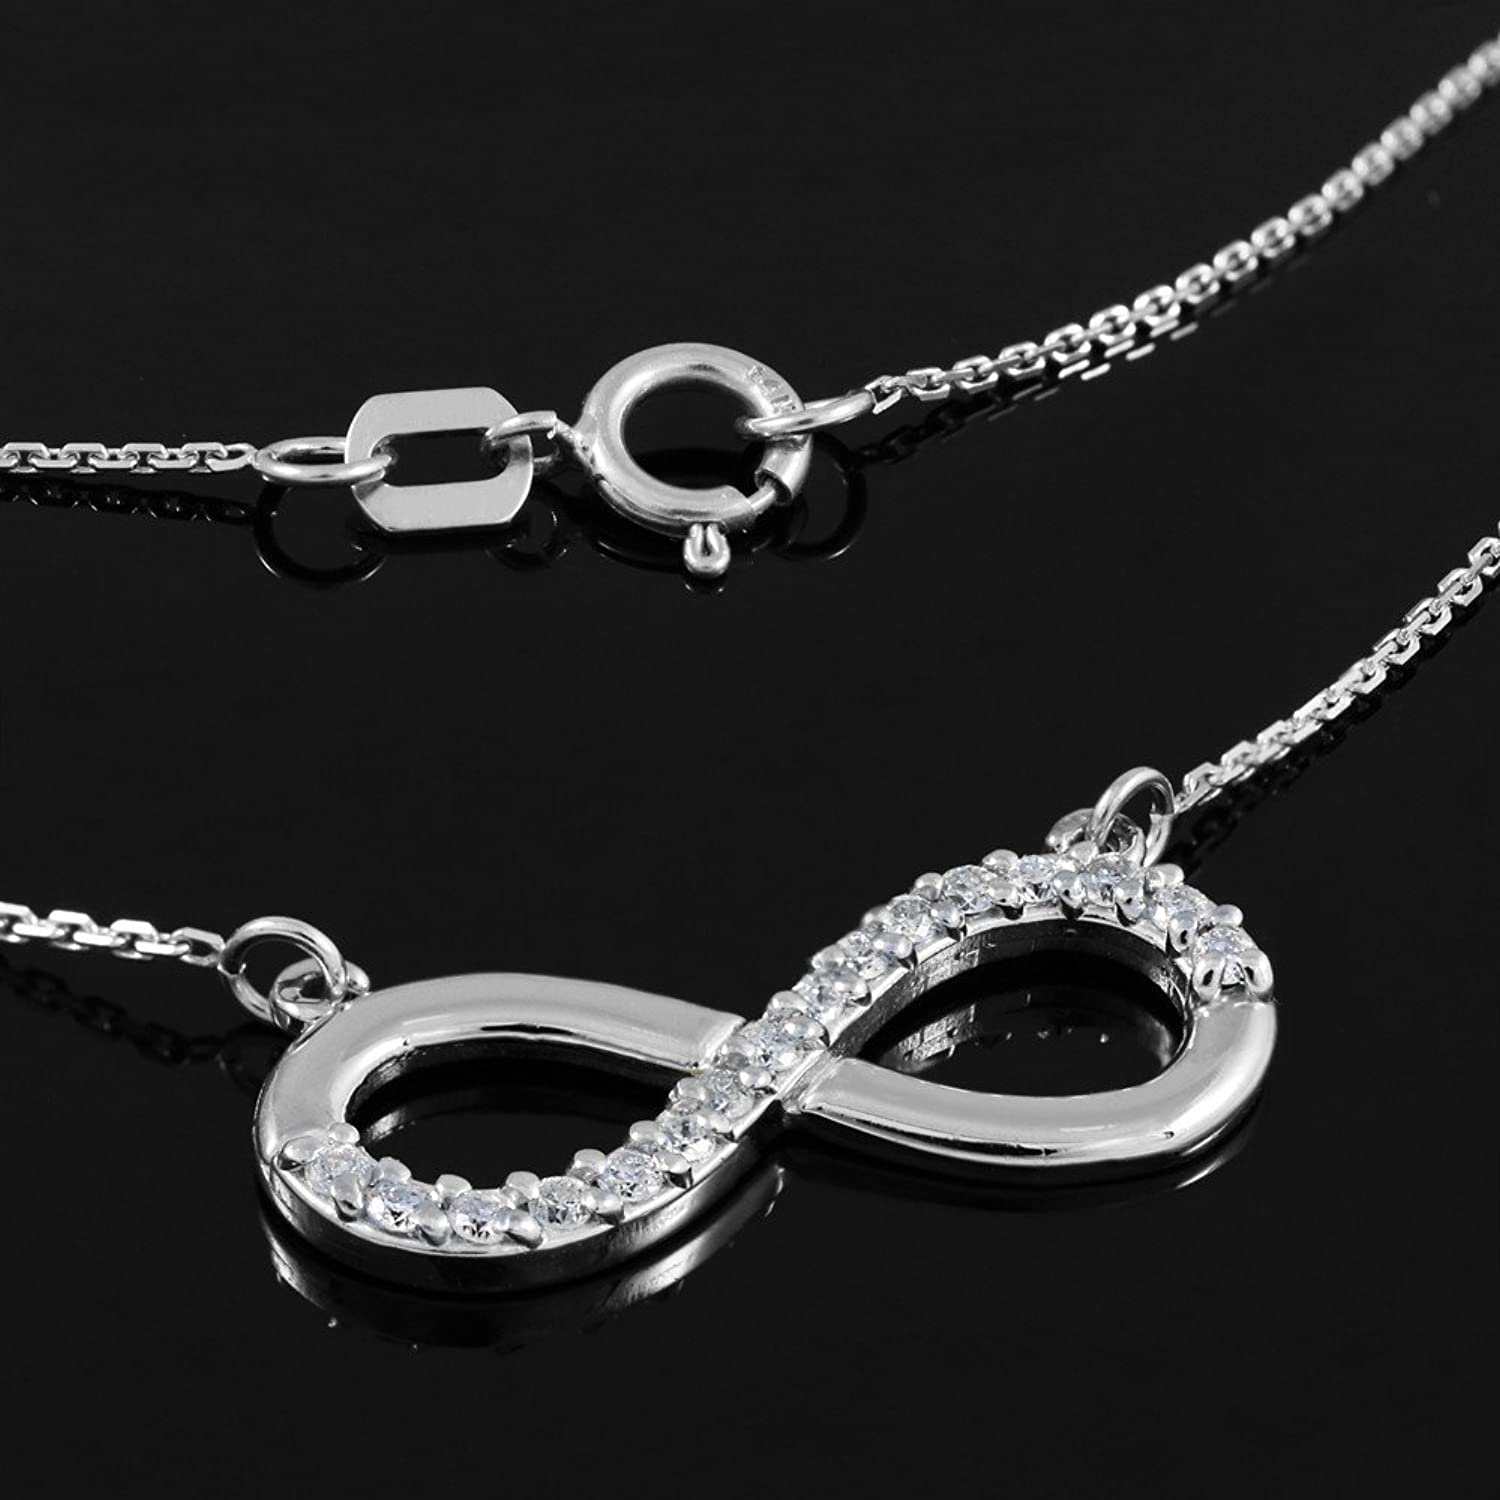 Amazon 14K White Gold Infinity Pendant Necklace with CZ